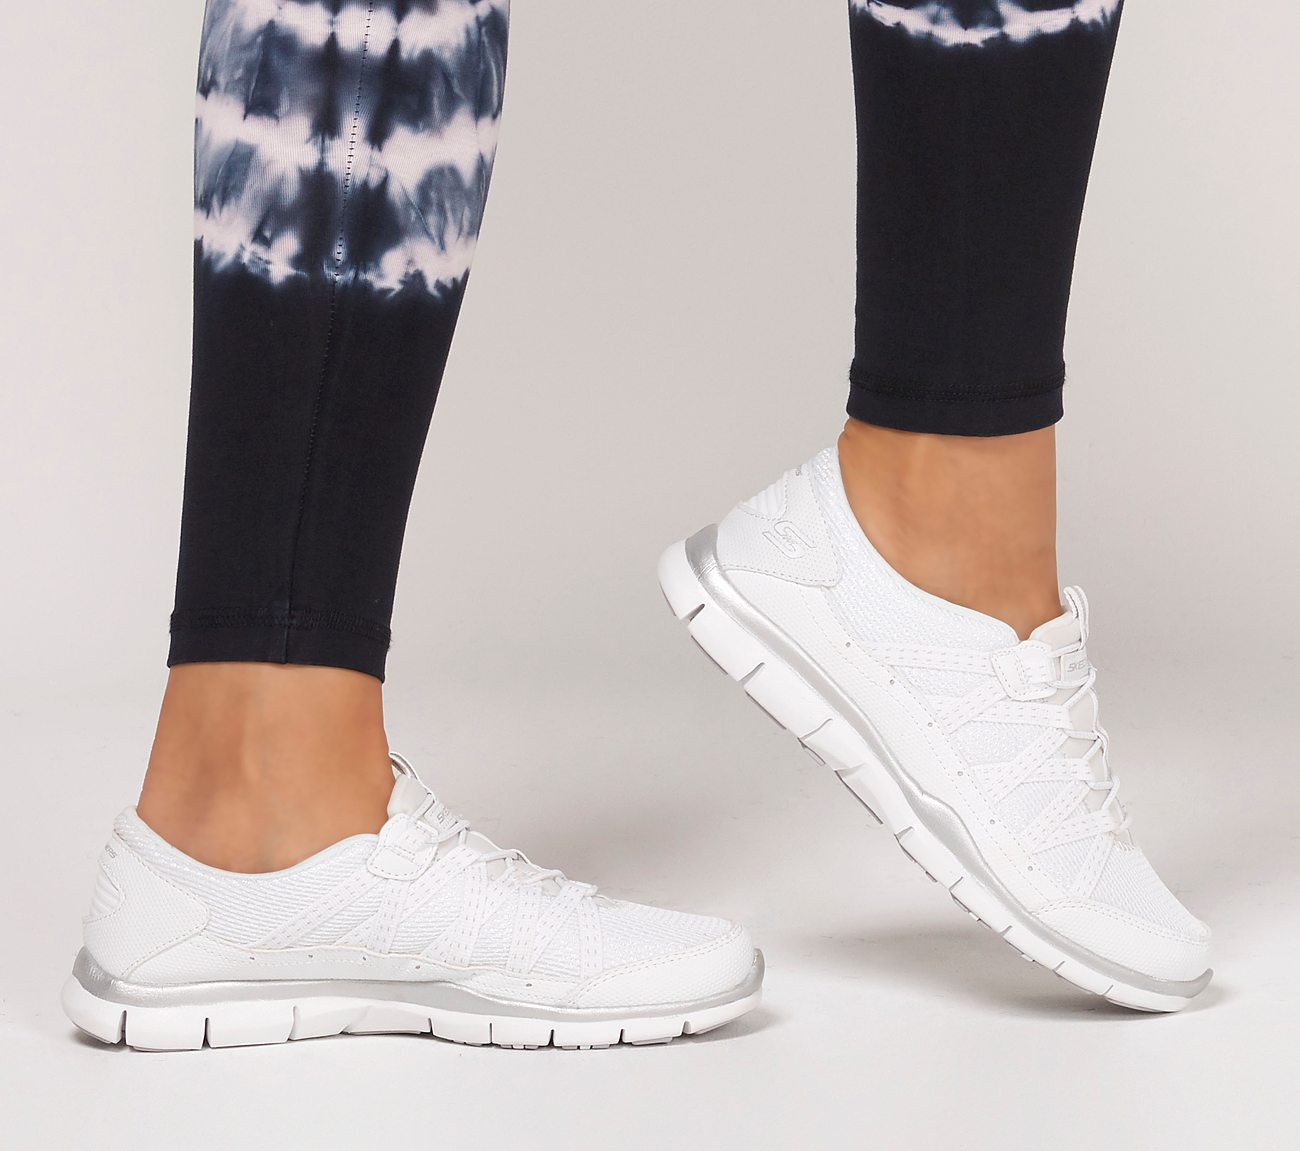 dependable performance footwear double coupon Gratis - Strolling